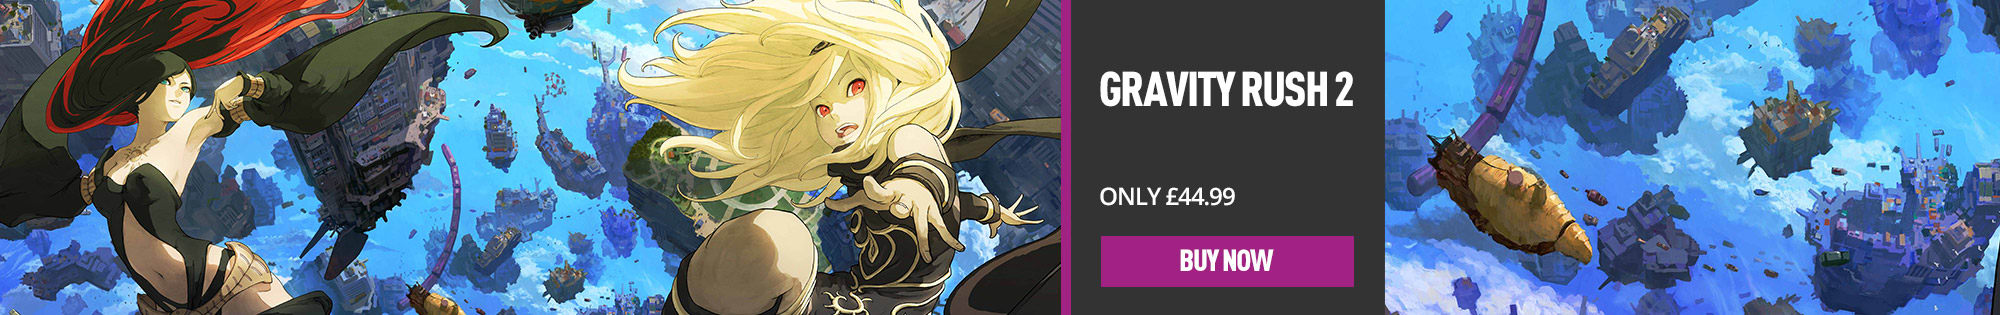 Gravity Rush 2 for PS4 - Buy Now at GAME.co.uk